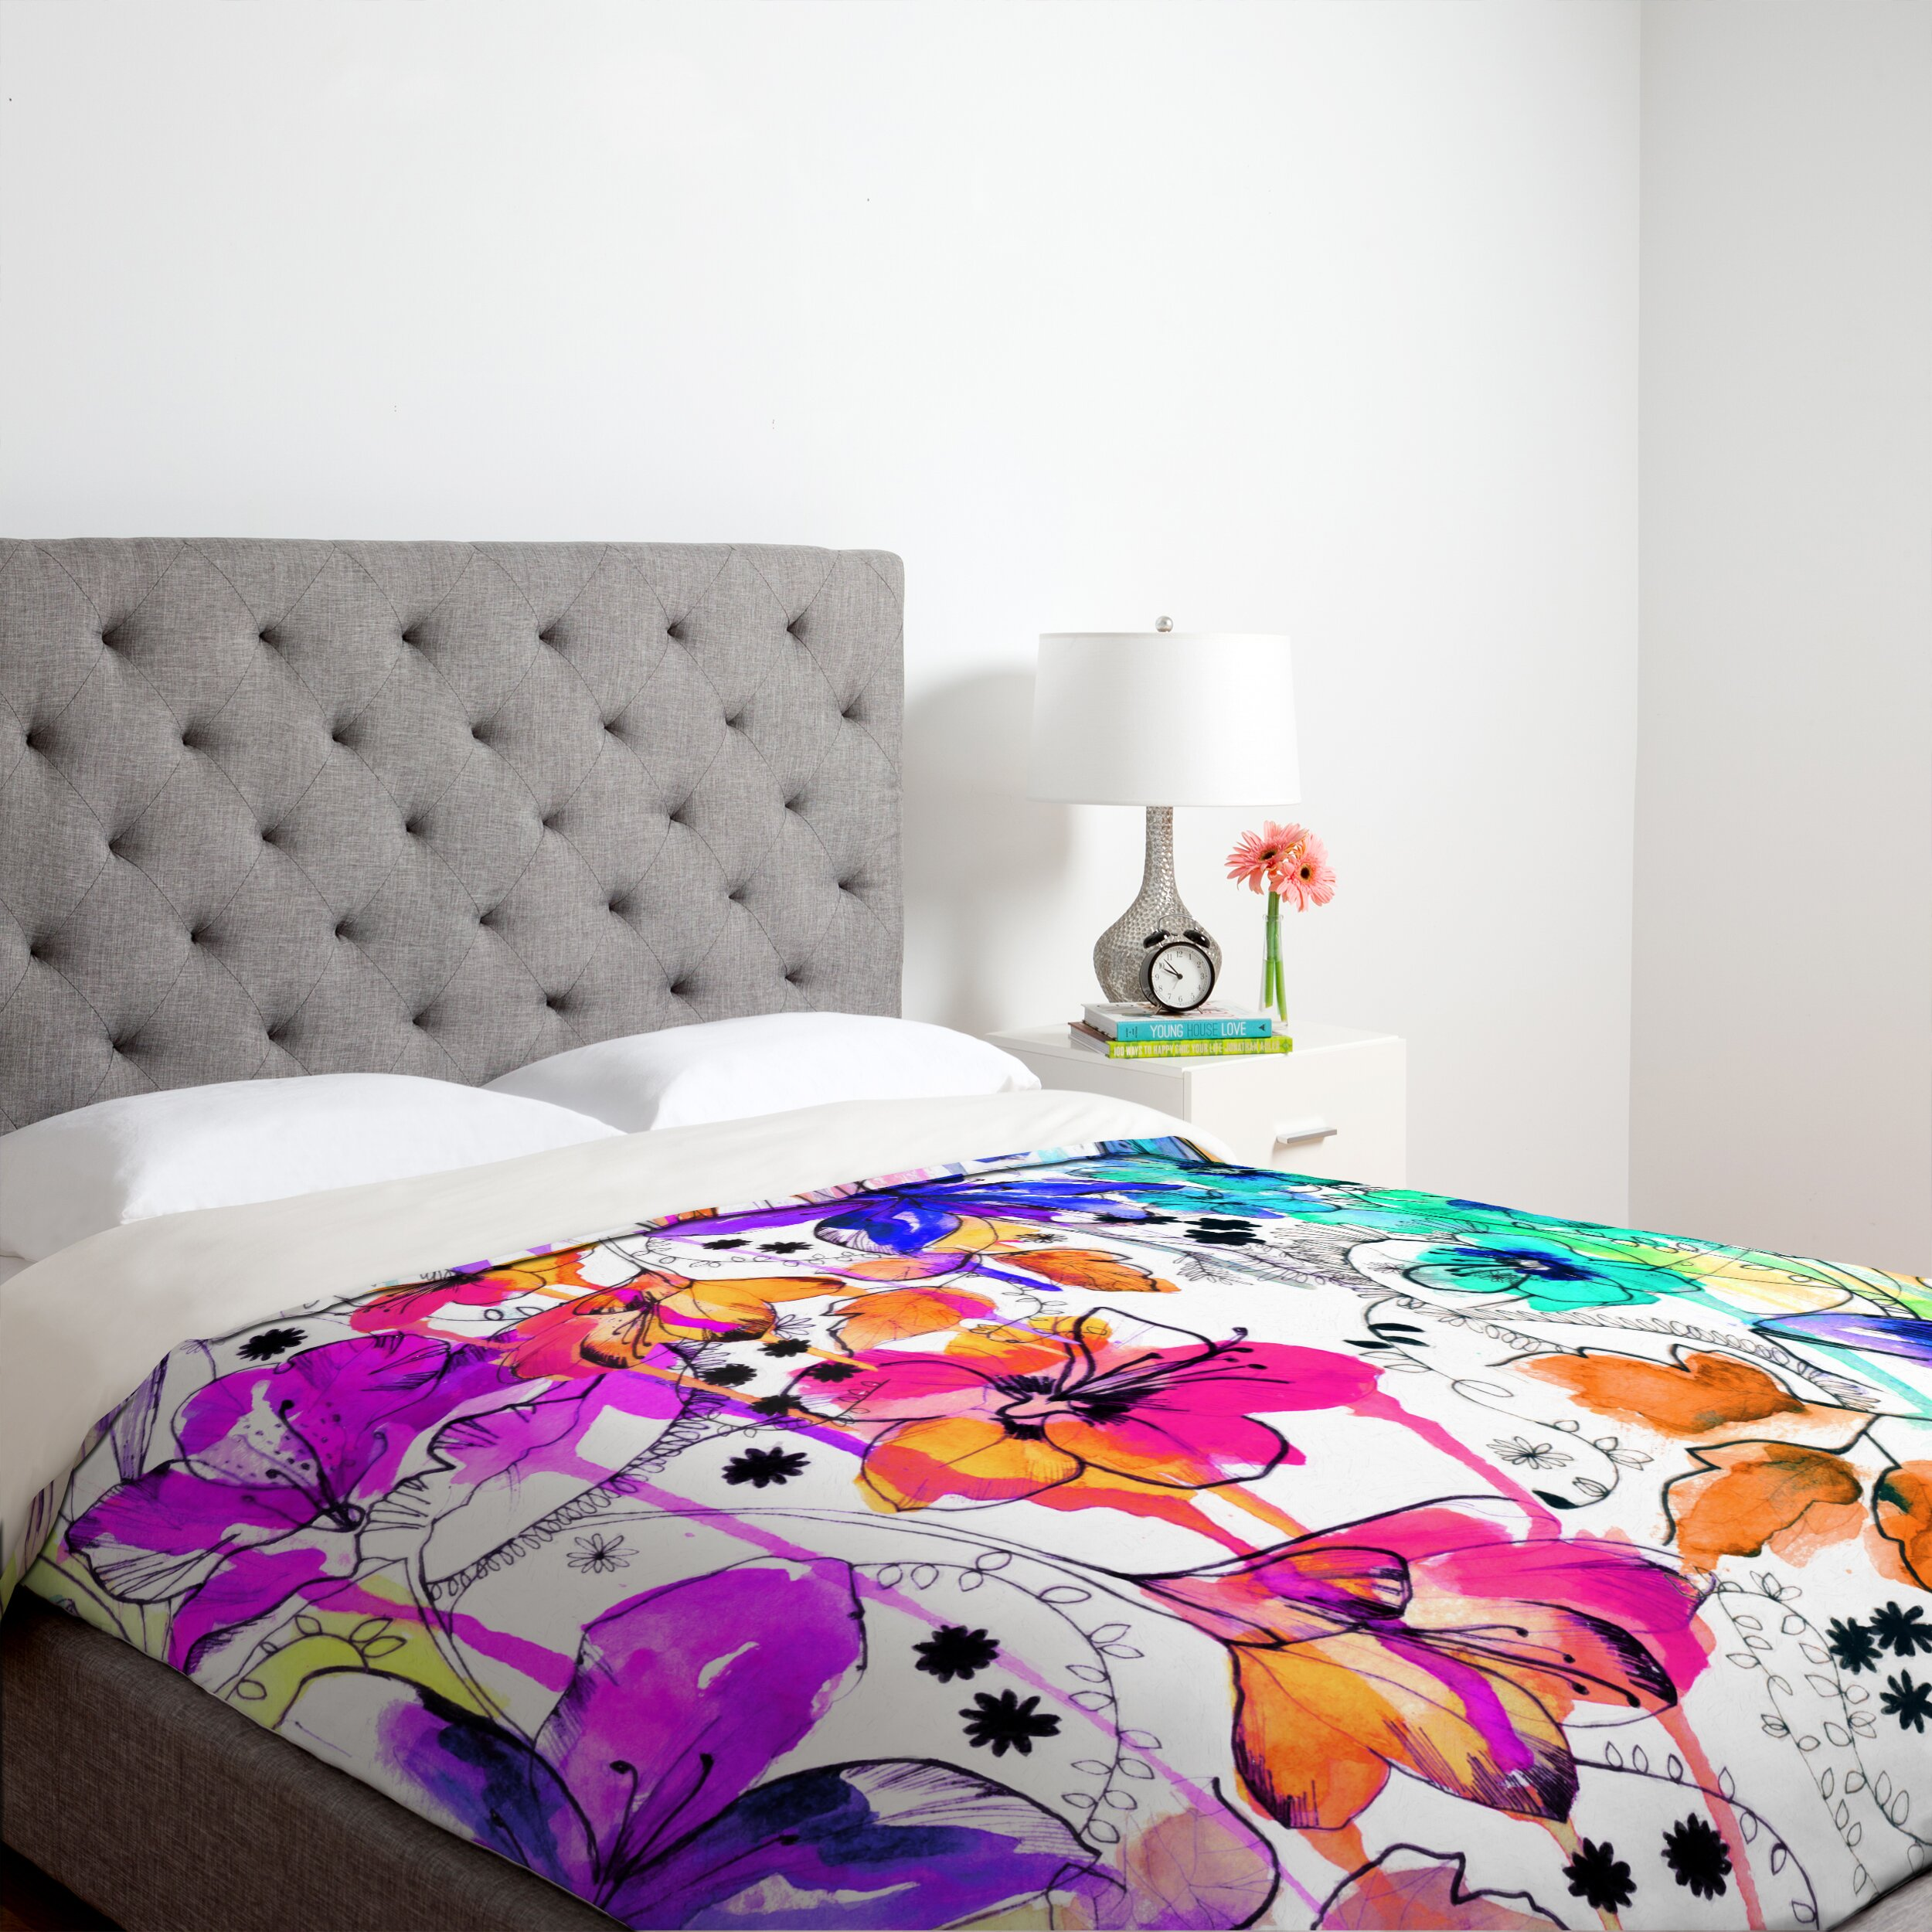 Brayden studio nolting 1 duvet cover collection reviews for Studio one bed cover